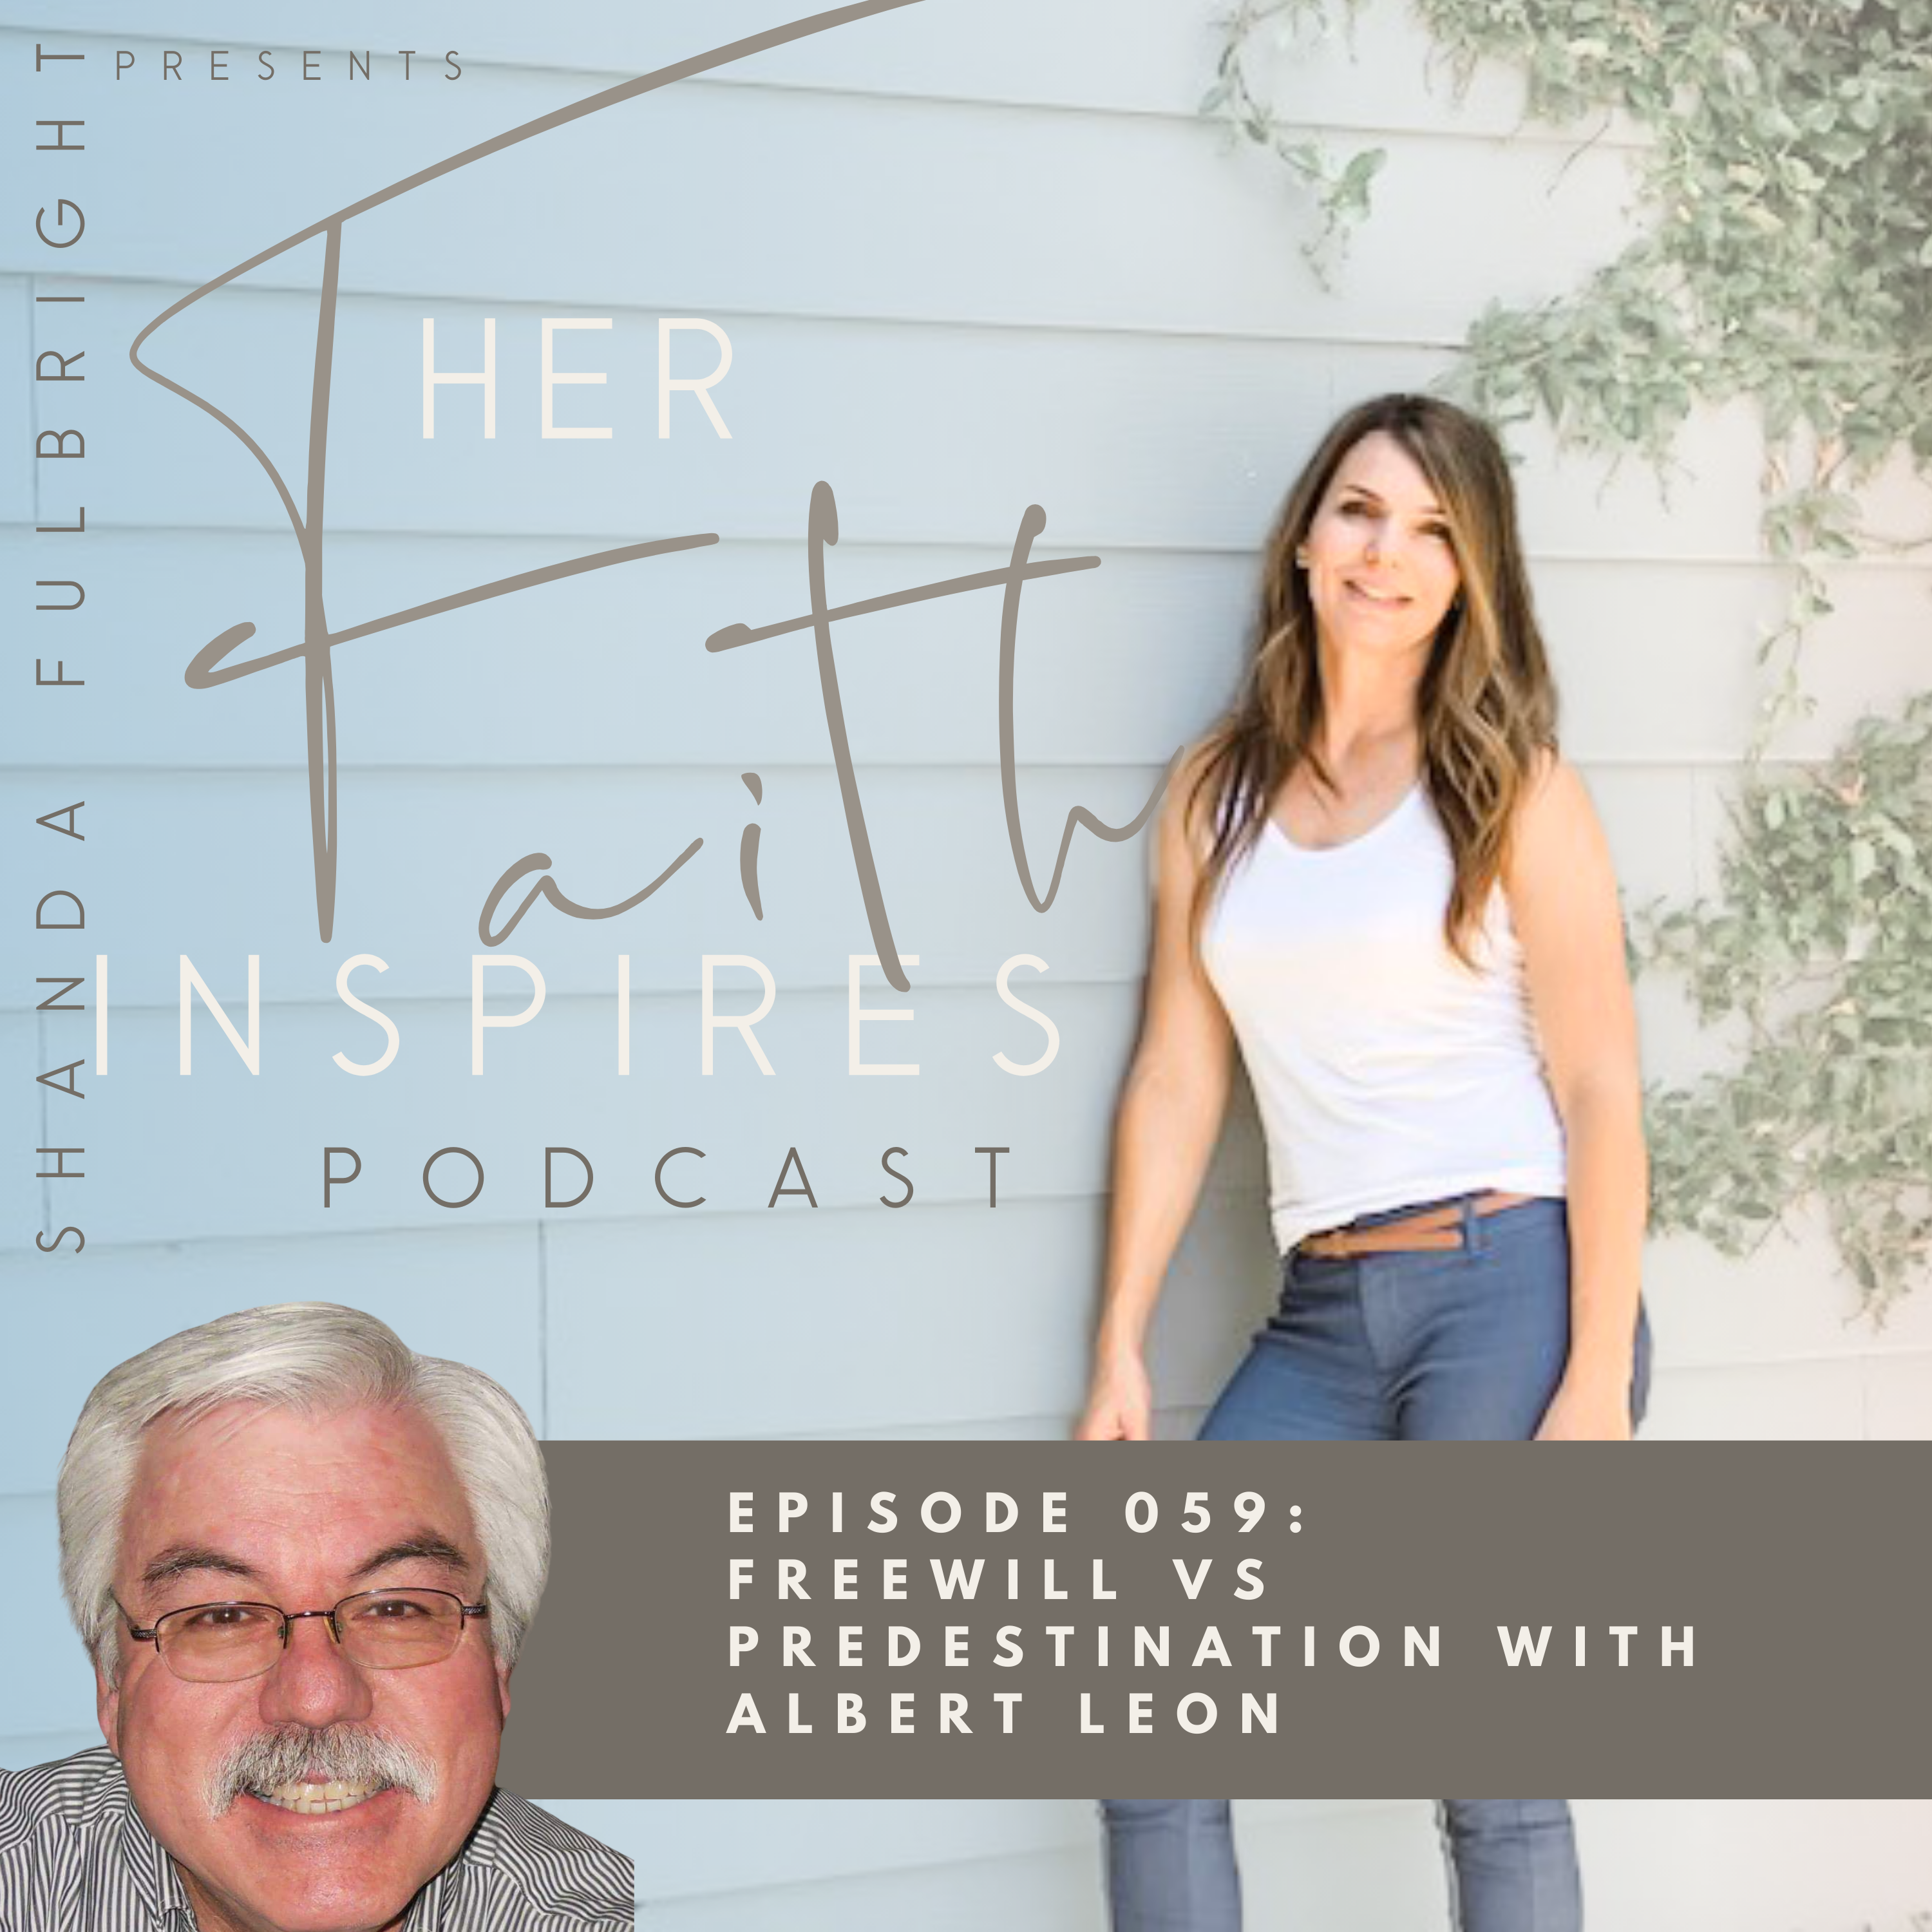 SF Podcast Episode 59 - HER FAITH INSPIRES 059 : Freewill vs Predestination with Albert Leon